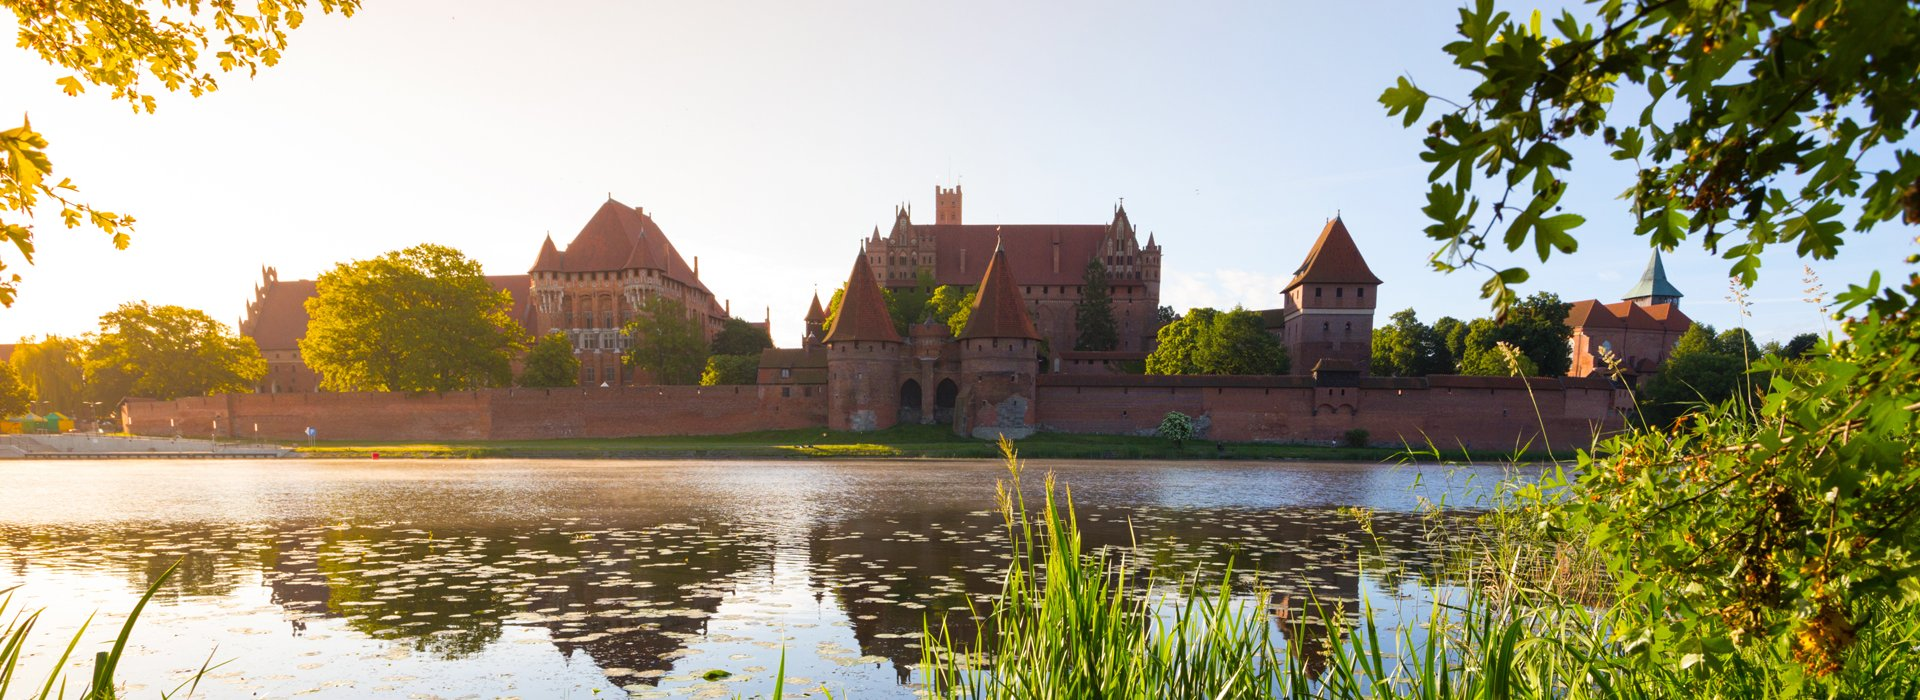 Malbork - the grand medieval castle